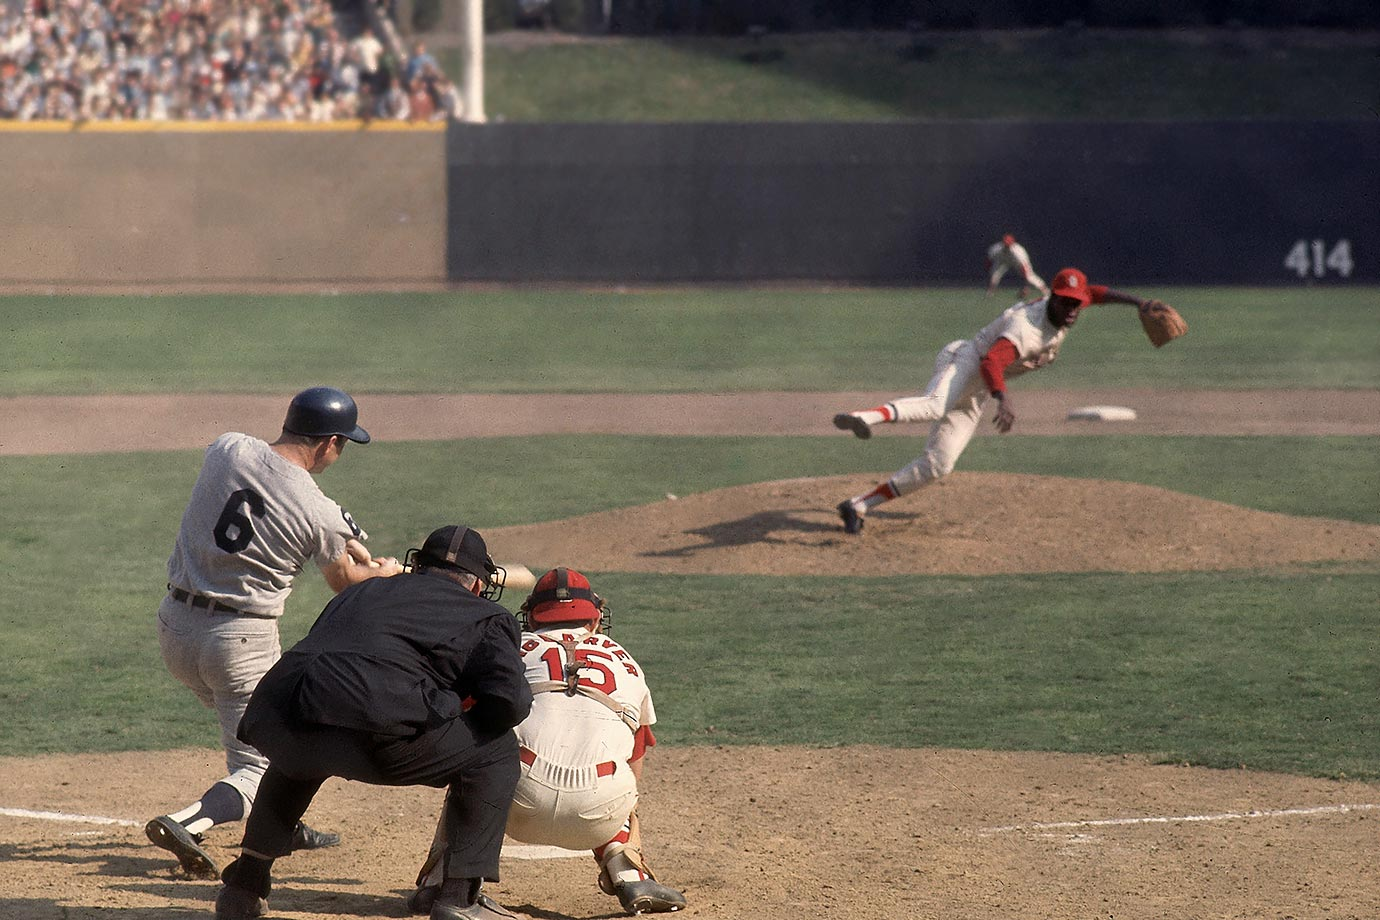 October 2, 1968 — World Series, Game 1